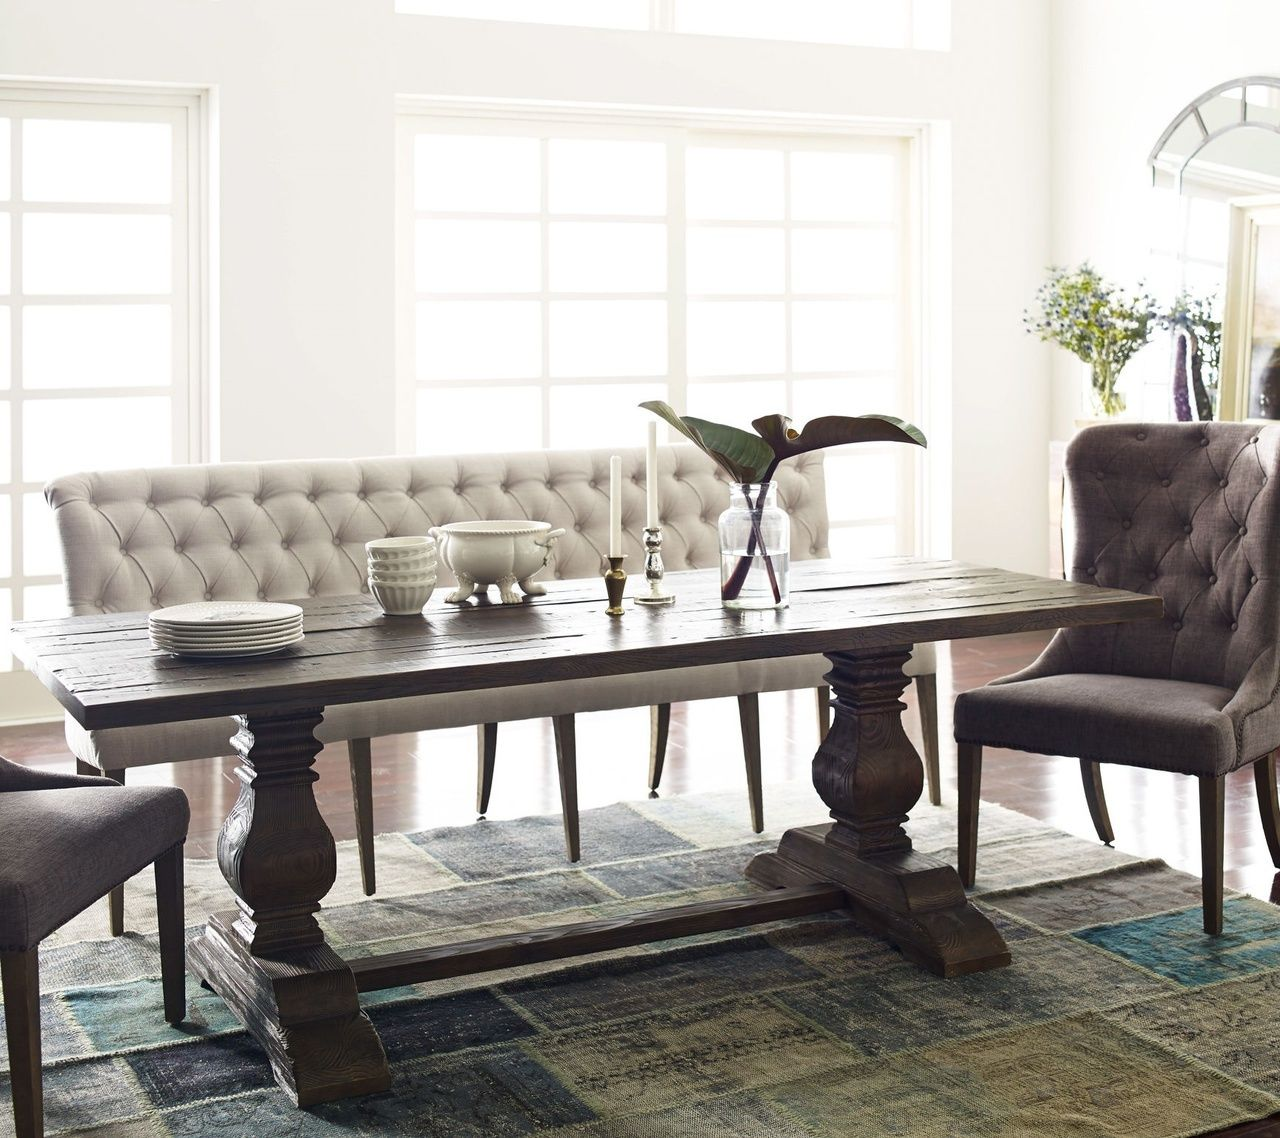 Dining Table With Bench And Chairs French Tufted Upholstered Dining Bench Banquette In 2019